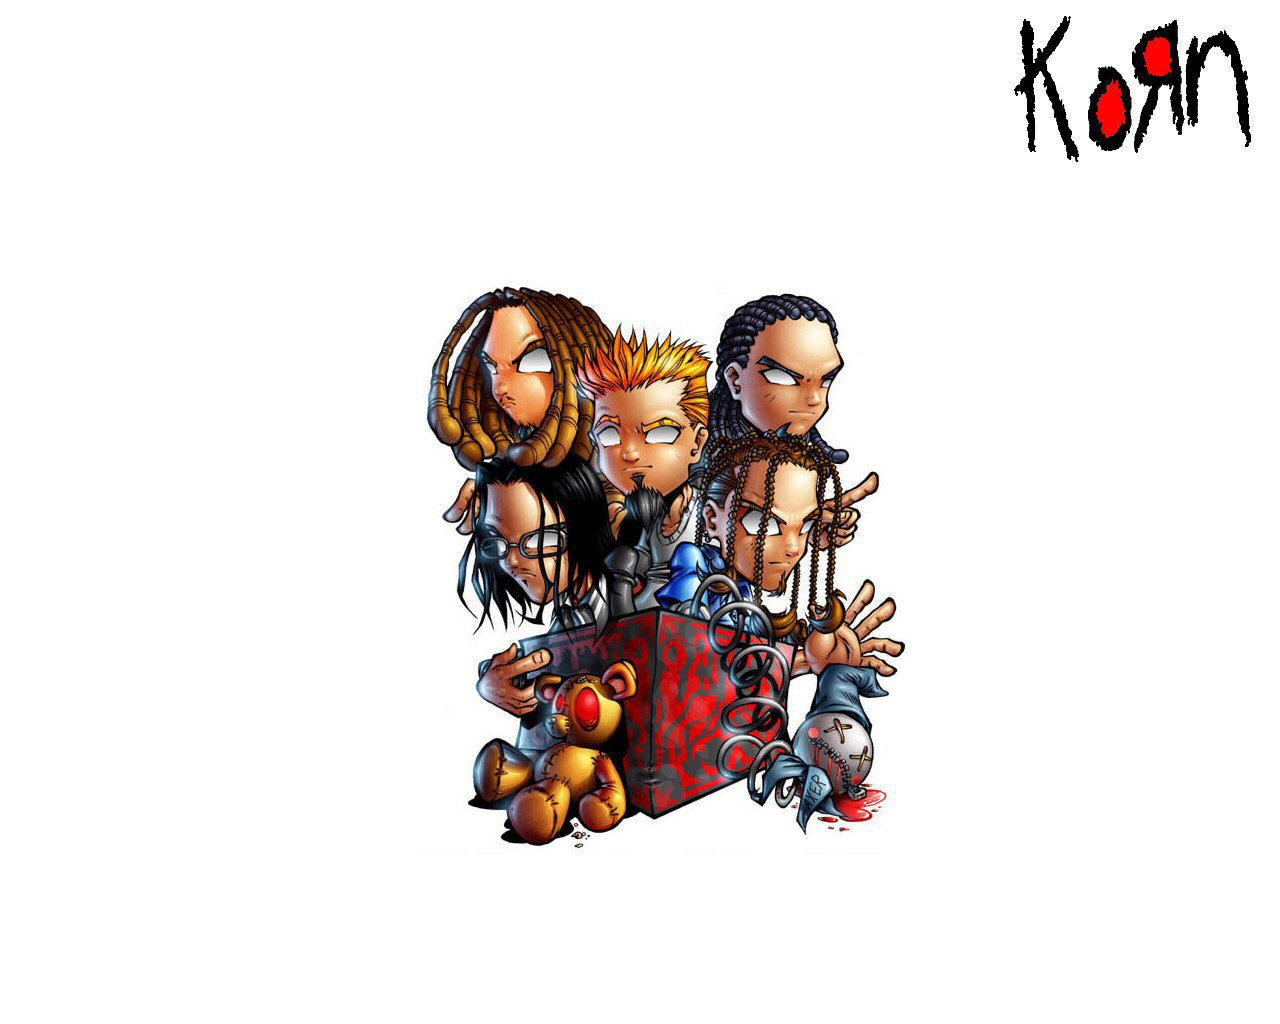 KoRn Wallpaper 2 by Dannius